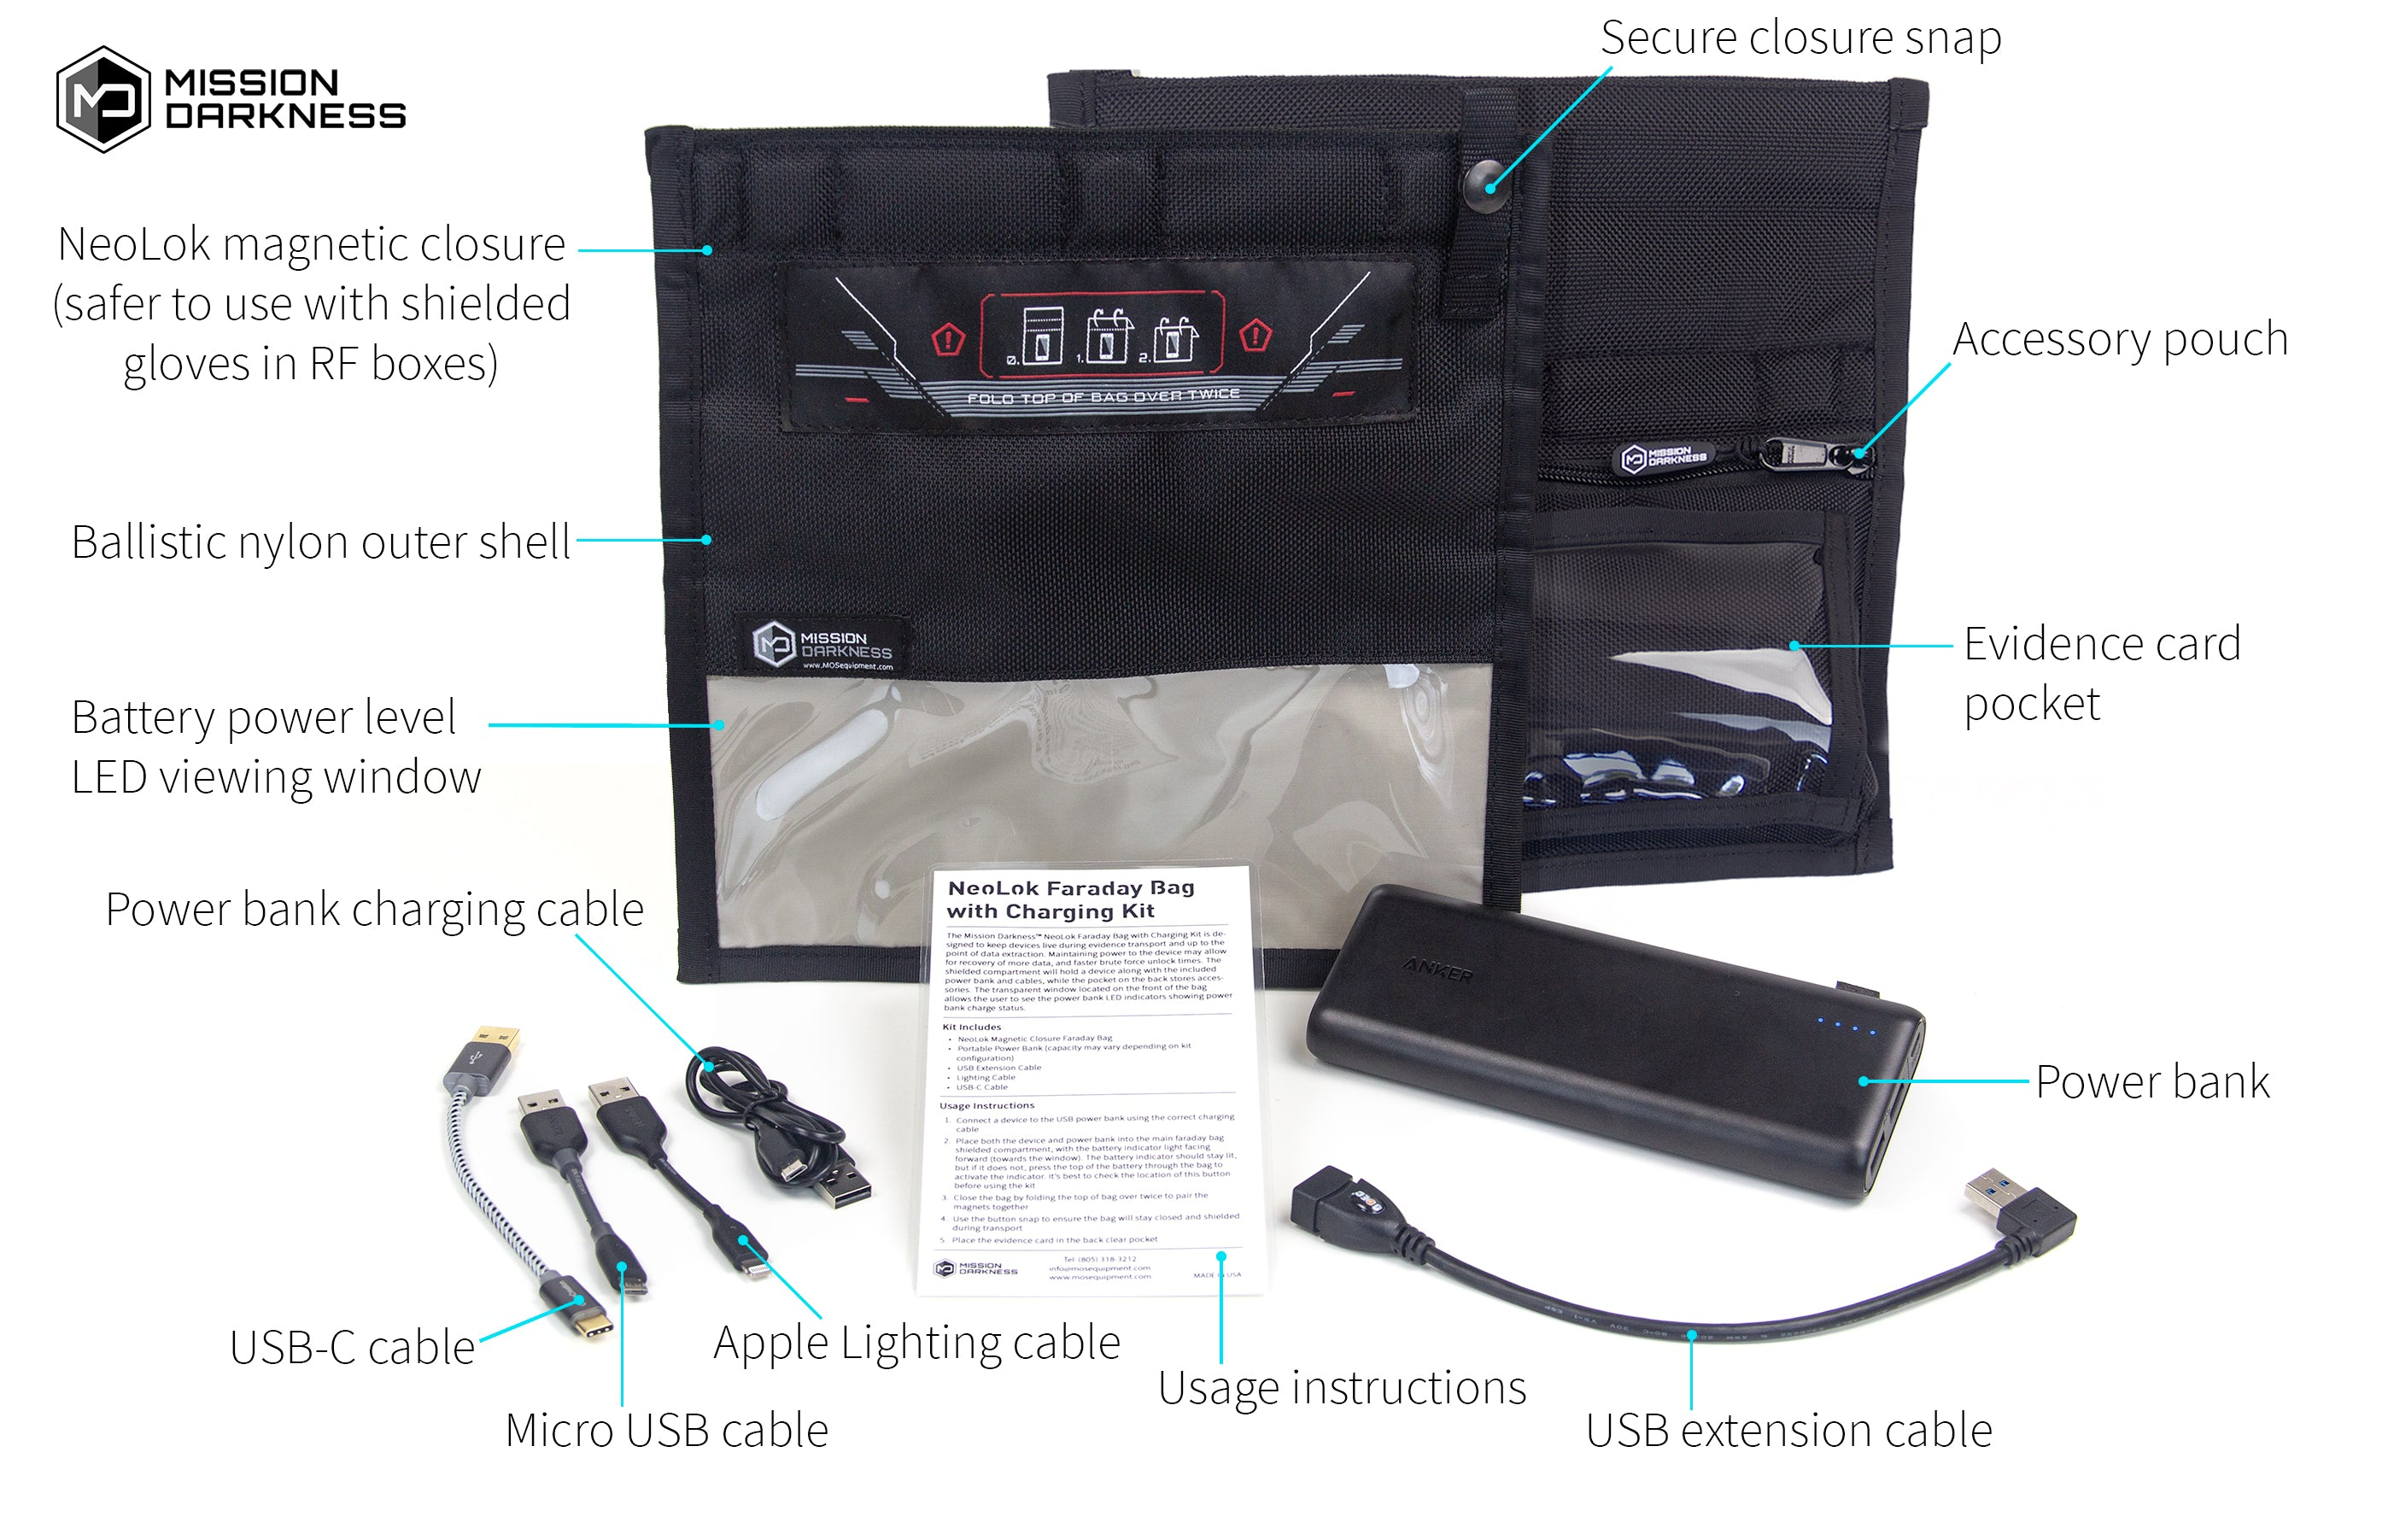 Mission_Darkness_NeoLok_Faraday_Bag-with_Charging_Kit